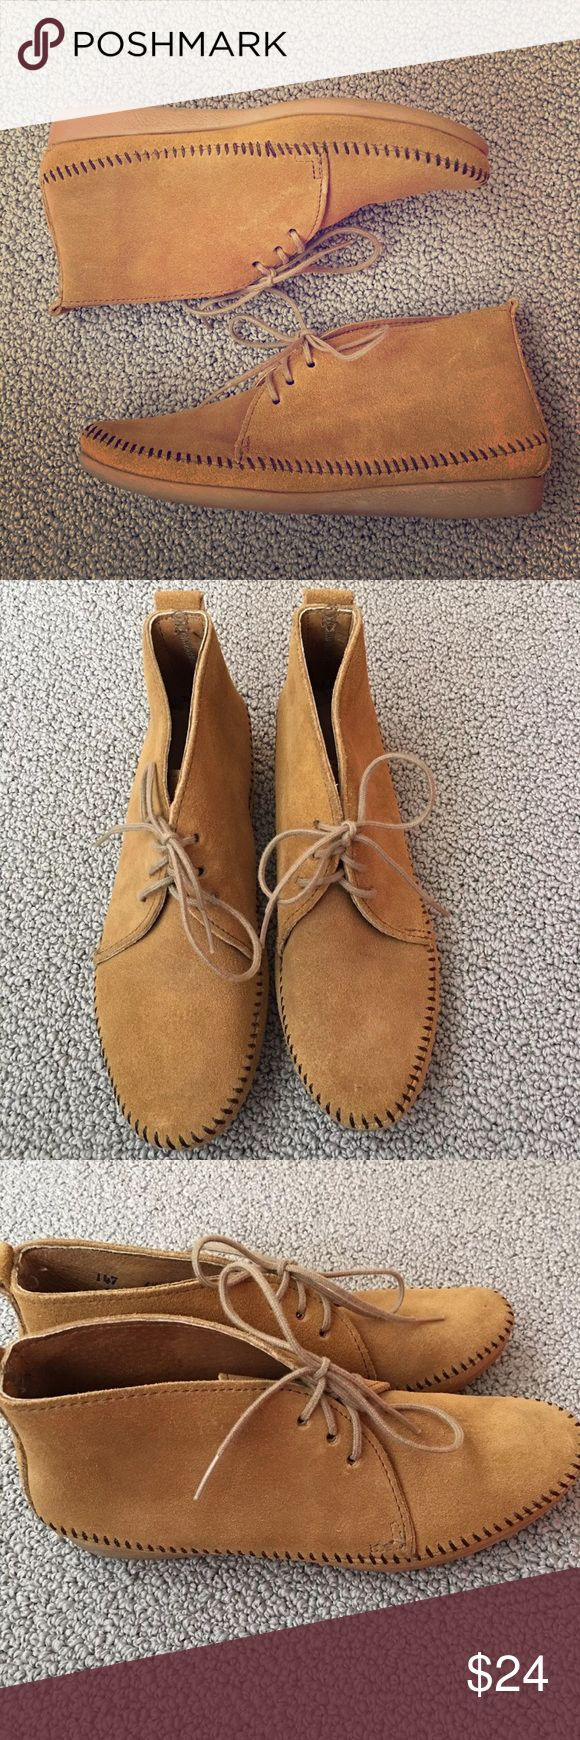 Vintage Minnetonka Size 6.5 Moccasin Ankle Boot Vintage Minnetonka  Size 6.5 Moccasin Bootie Ankle Booties Tan Nubuck Leather Brown stitching Made in the USA Minnetonka Shoes Ankle Boots & Booties